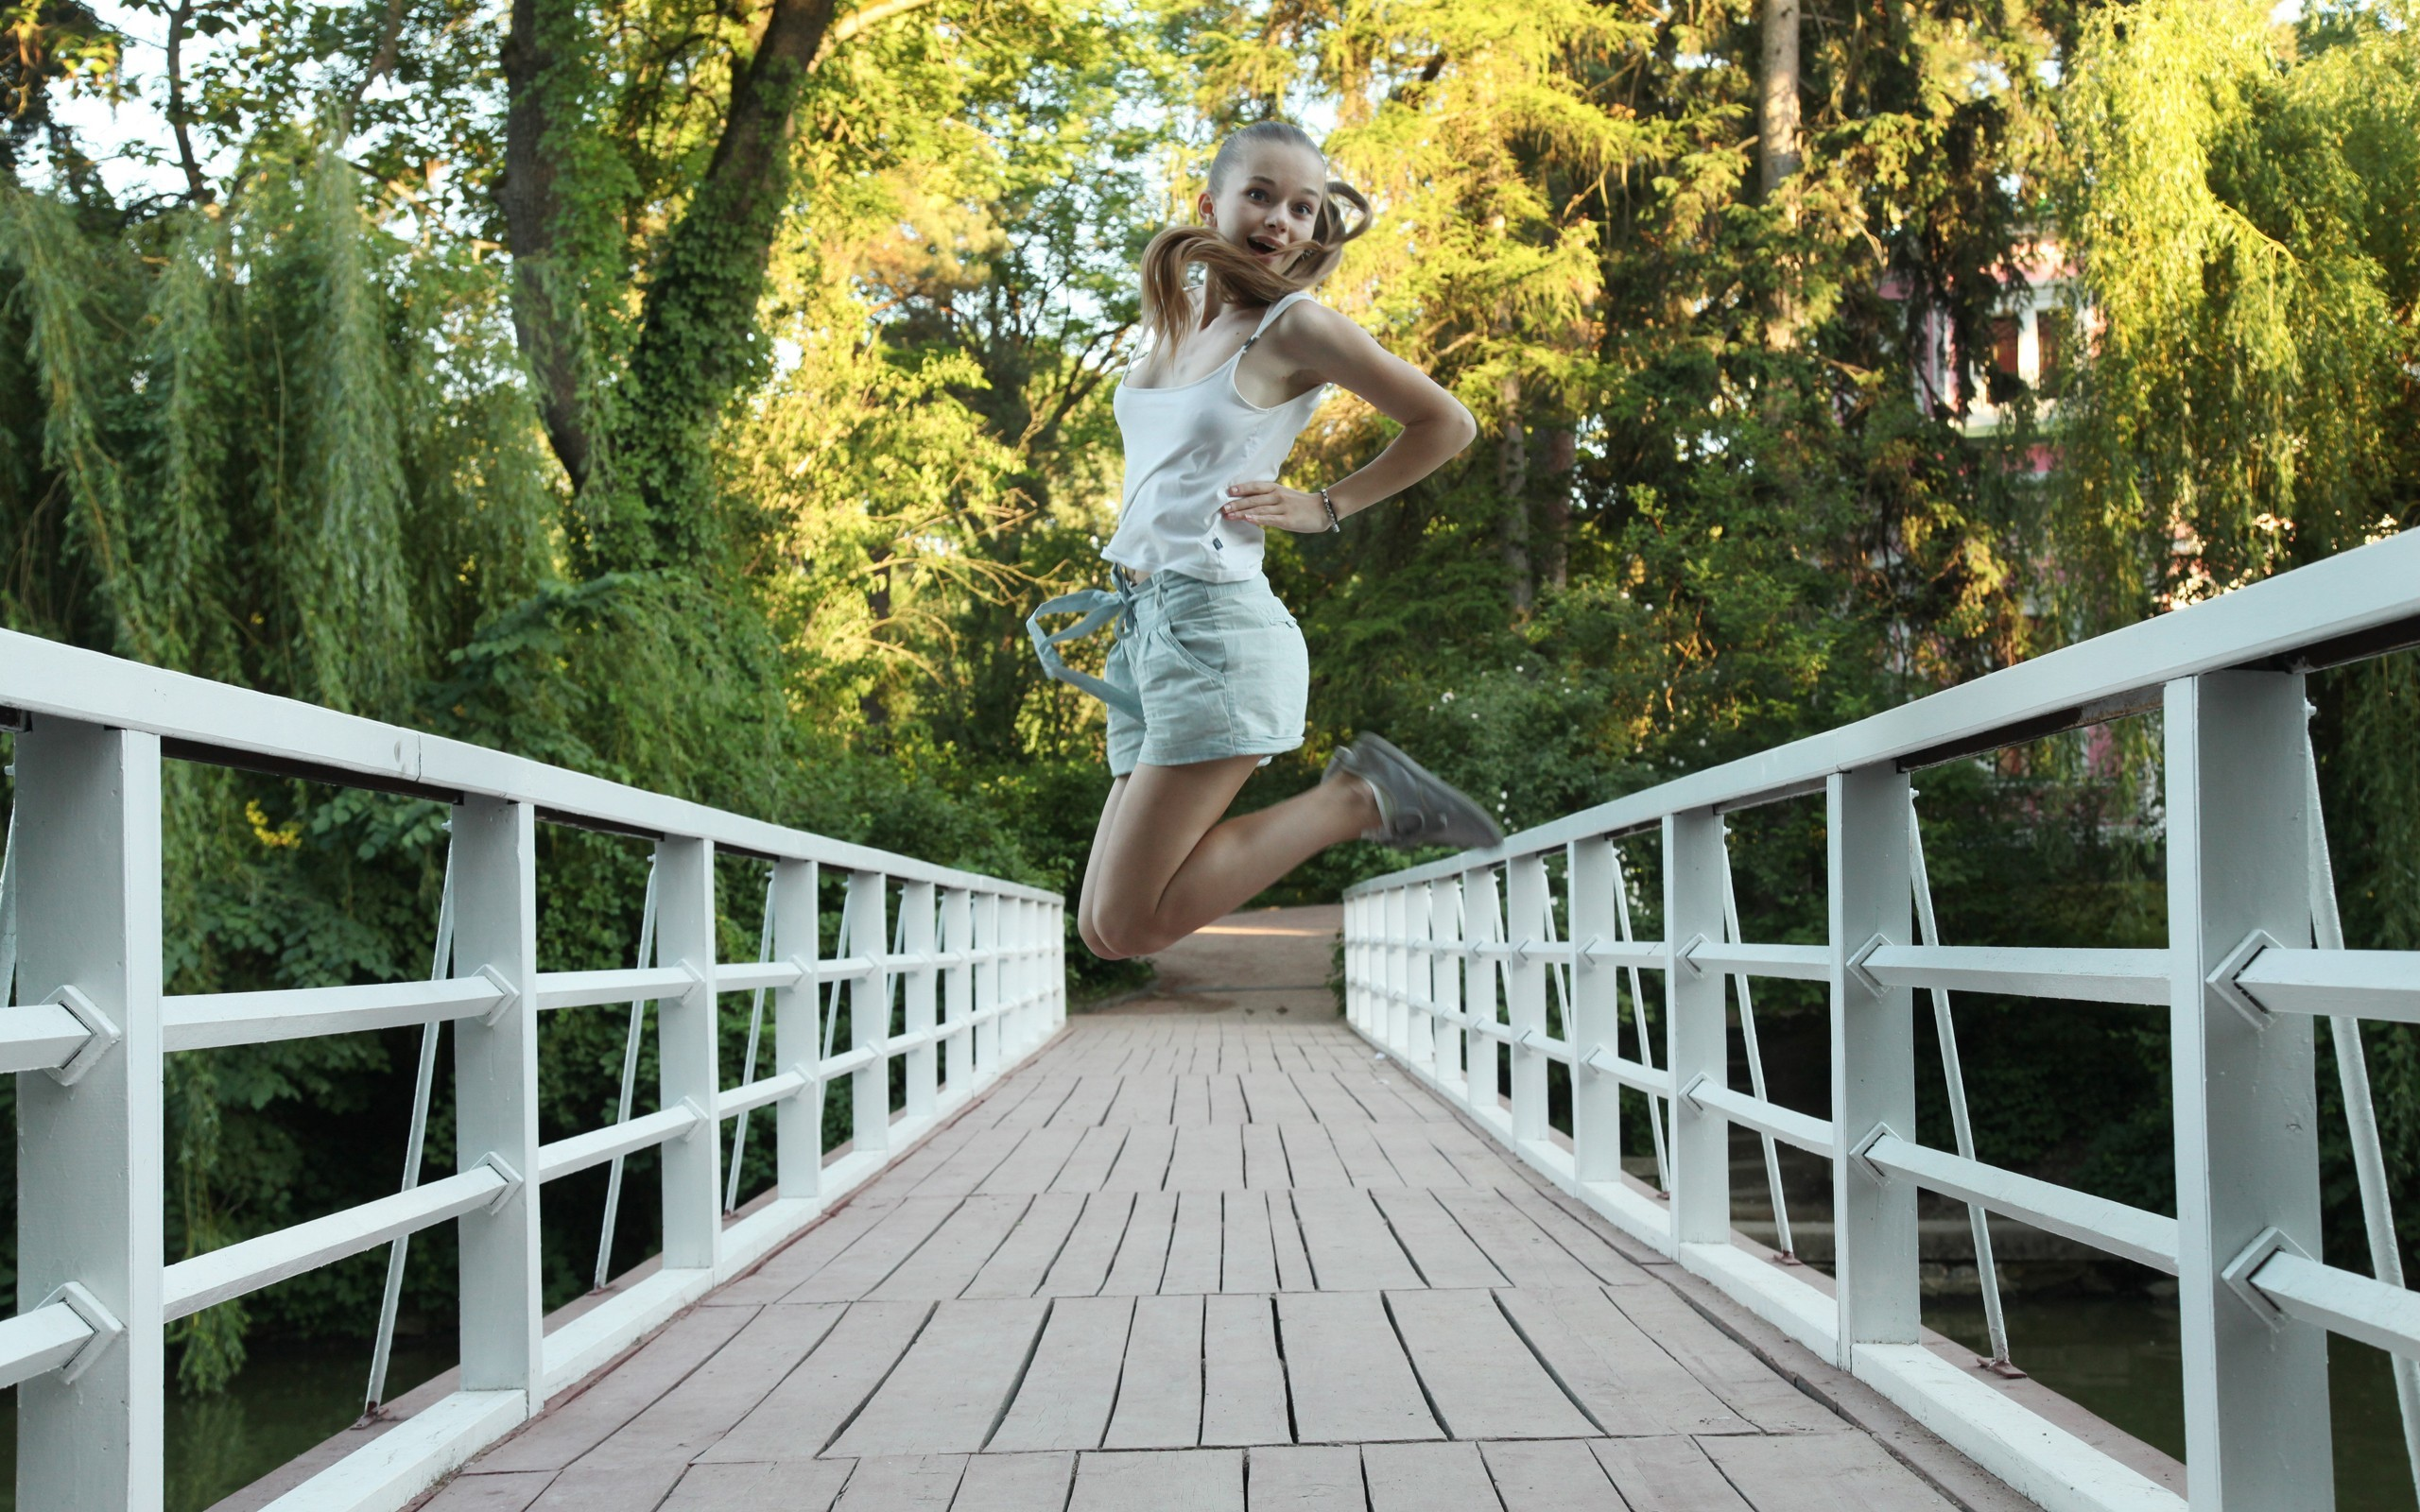 woman Bridges jumping HD Wallpaper